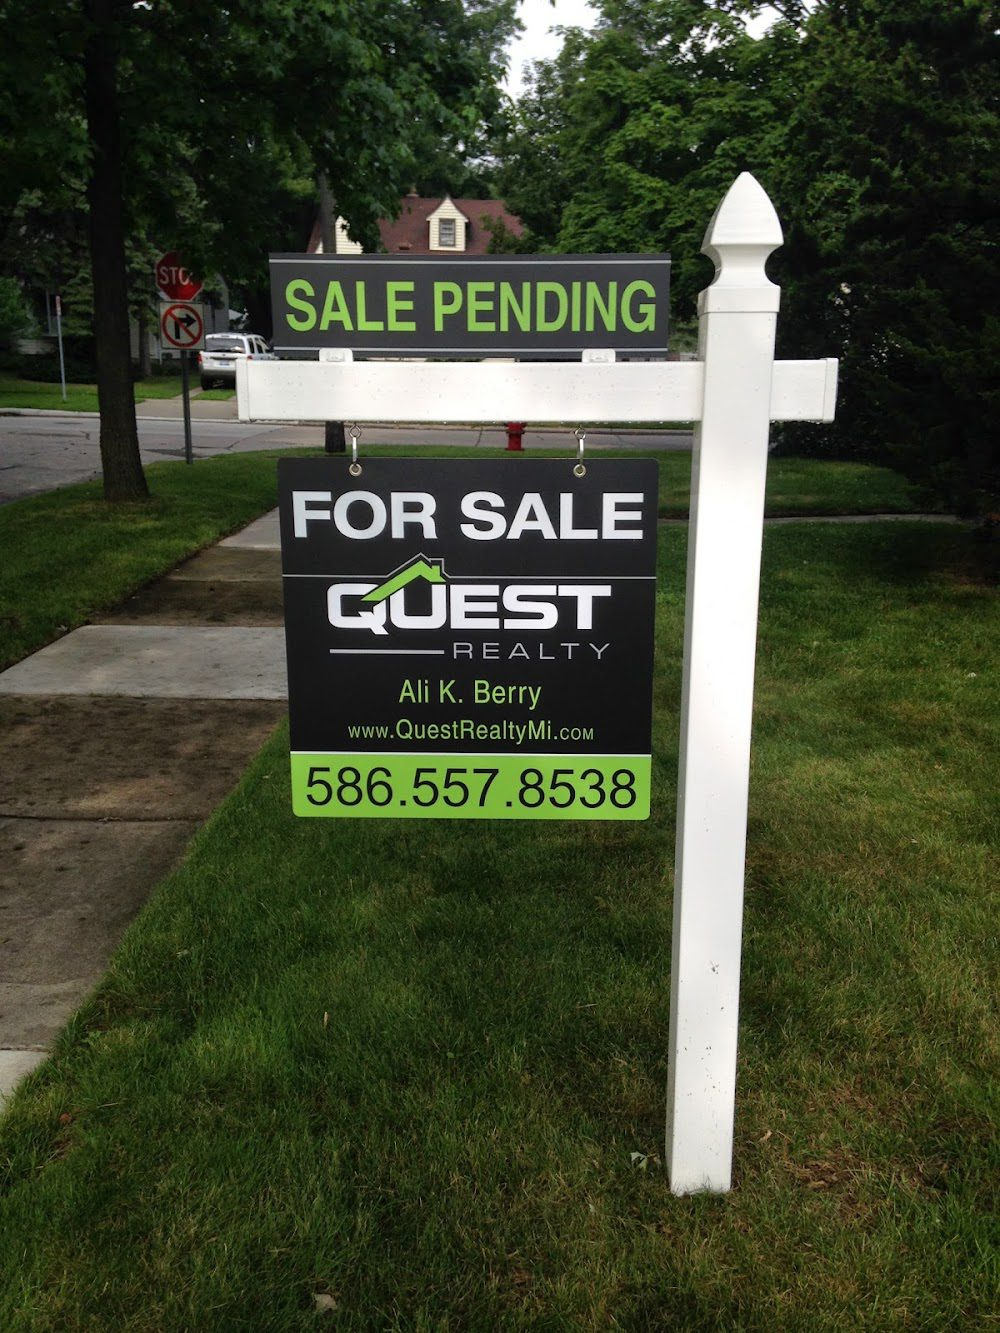 Quest Realty